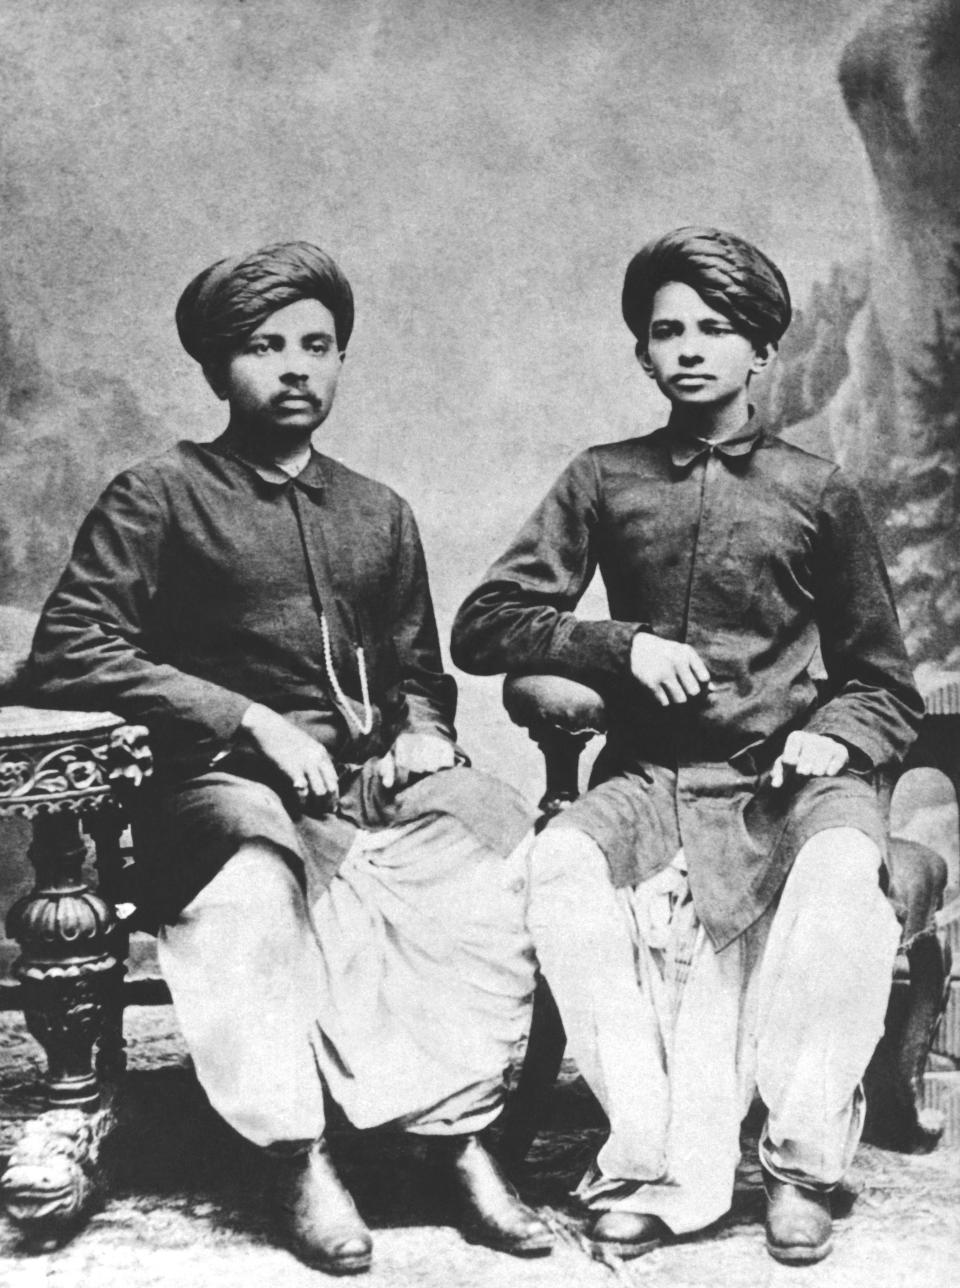 Mahatma Gandhi (R) with his brother, Laxmidas Gandhi, India, 1886. (Photo by Underwood Archives/Getty Images)